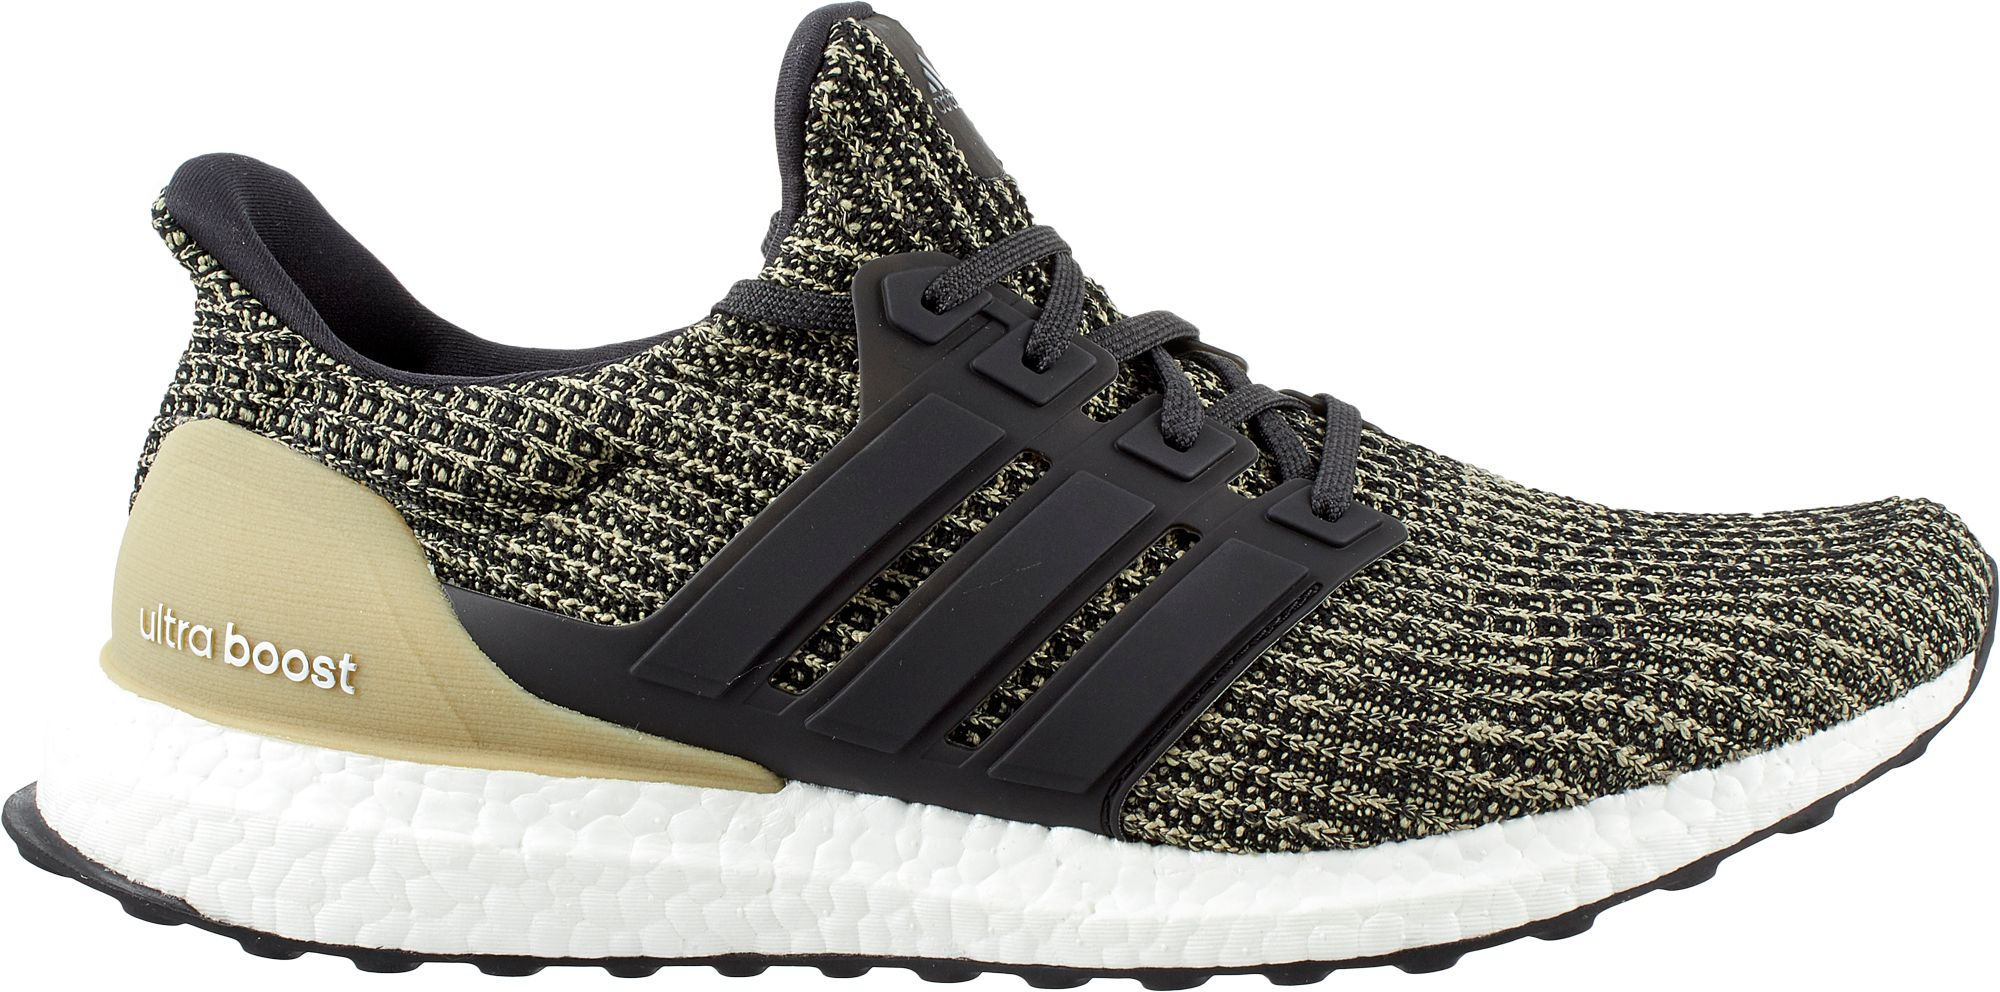 Ultraboost ShoesMen's Running DZAMGw